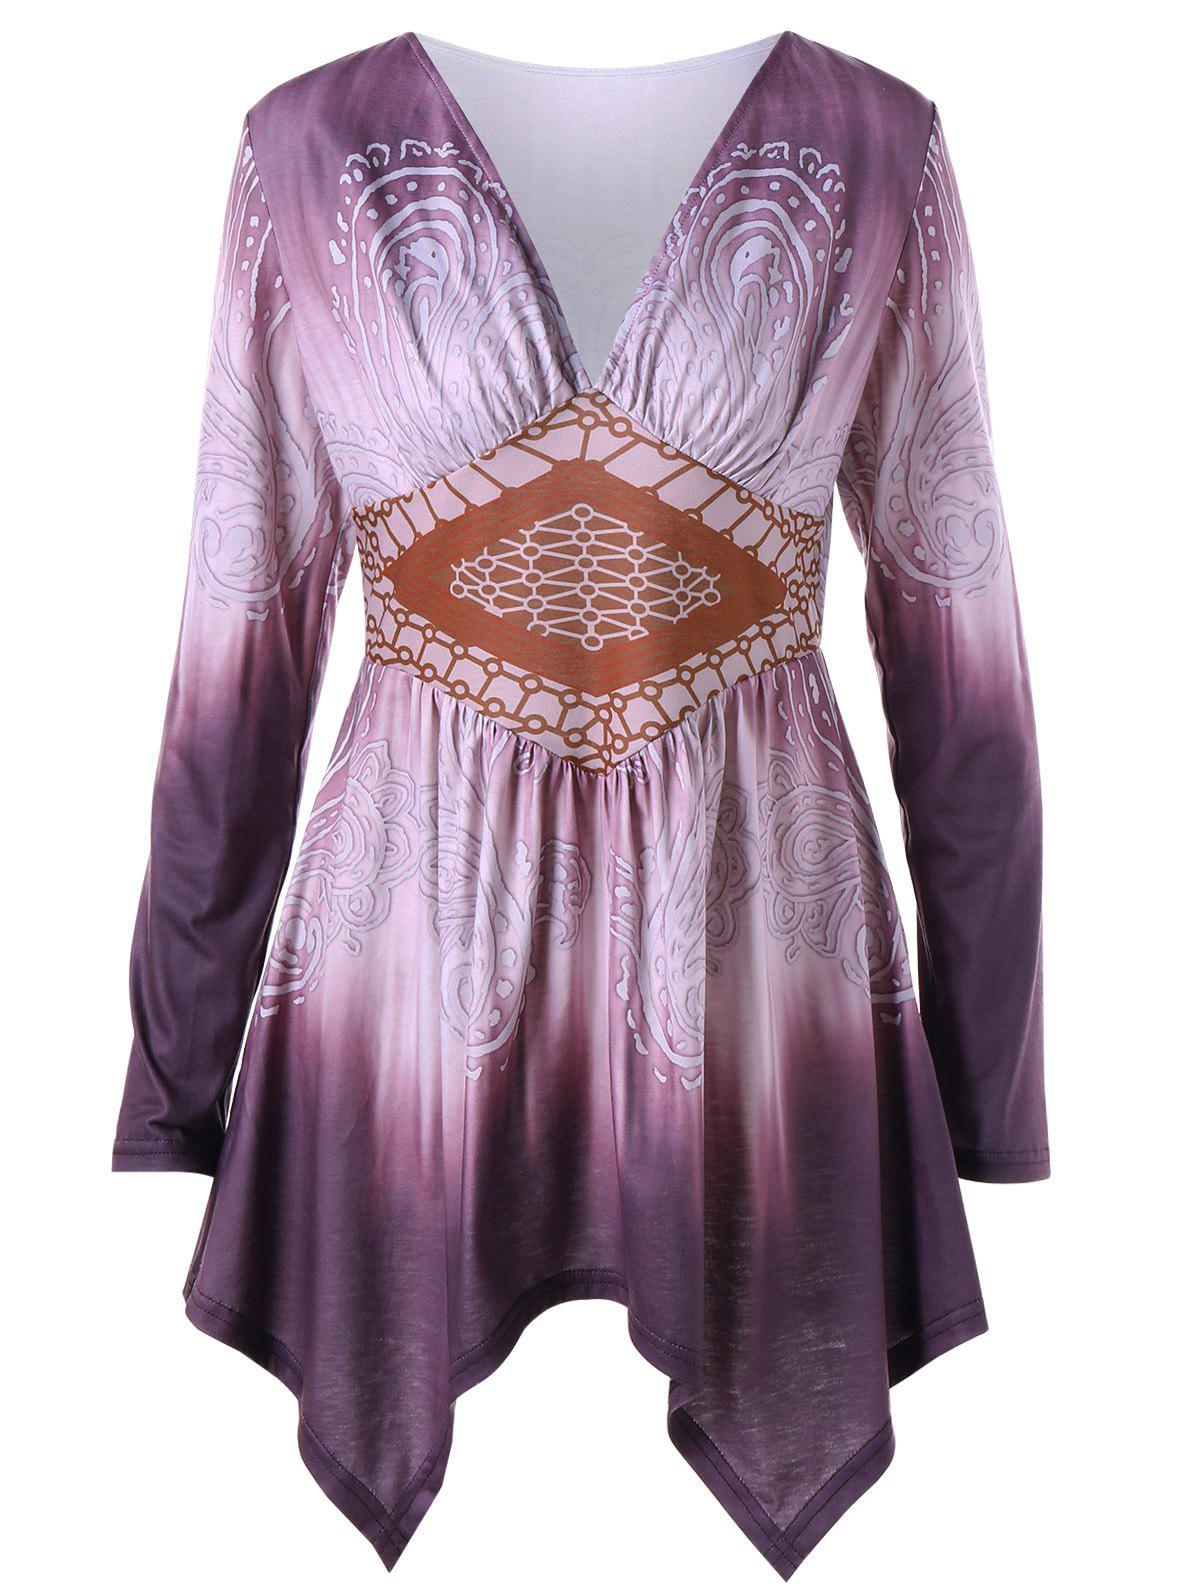 Plus Size Ombre Paisley Empire Waist Tunic TopWOMEN<br><br>Size: XL; Color: DARK VIOLET; Material: Polyester,Spandex; Shirt Length: Long; Sleeve Length: Full; Collar: V-Neck; Style: Casual; Season: Fall,Spring; Pattern Type: Paisley; Weight: 0.3100kg; Package Contents: 1 x Top;